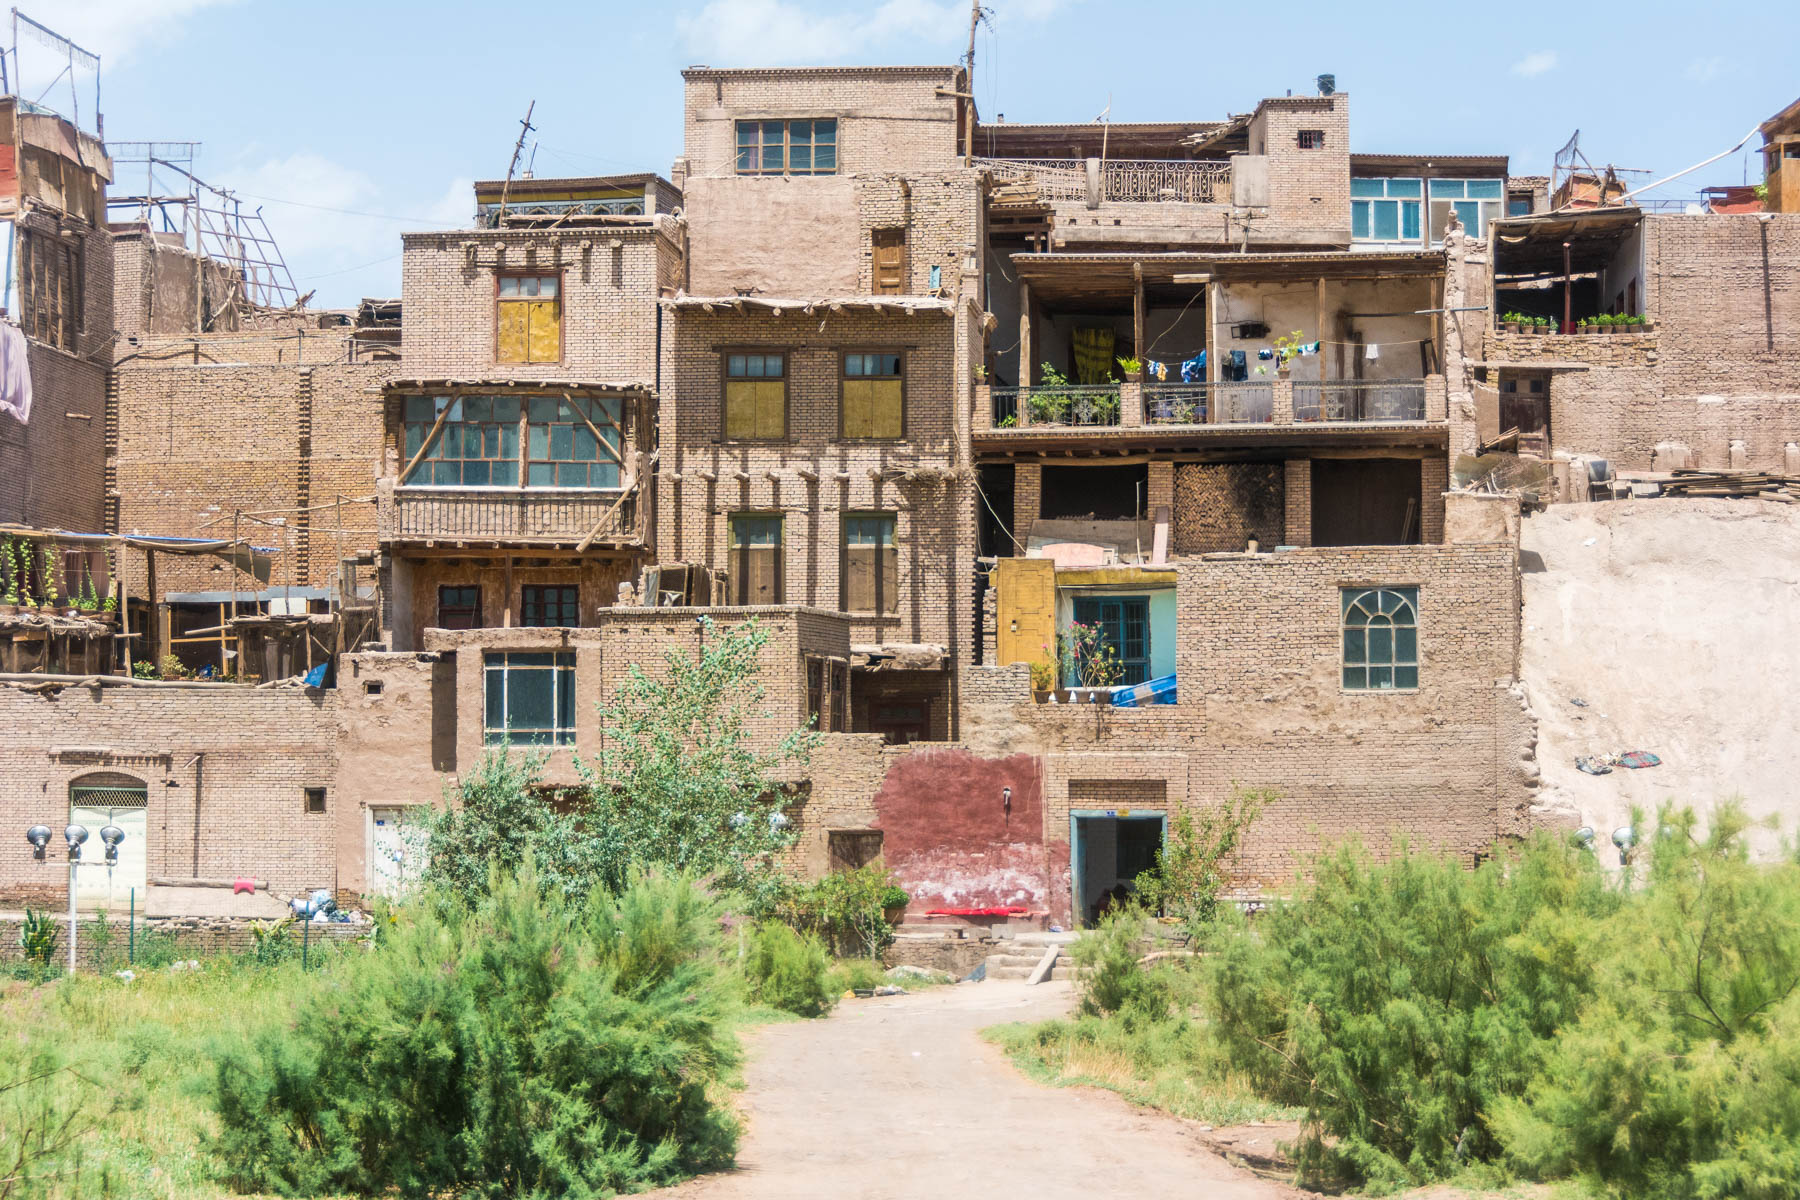 The last true remnants of the Kashgar Old Town.